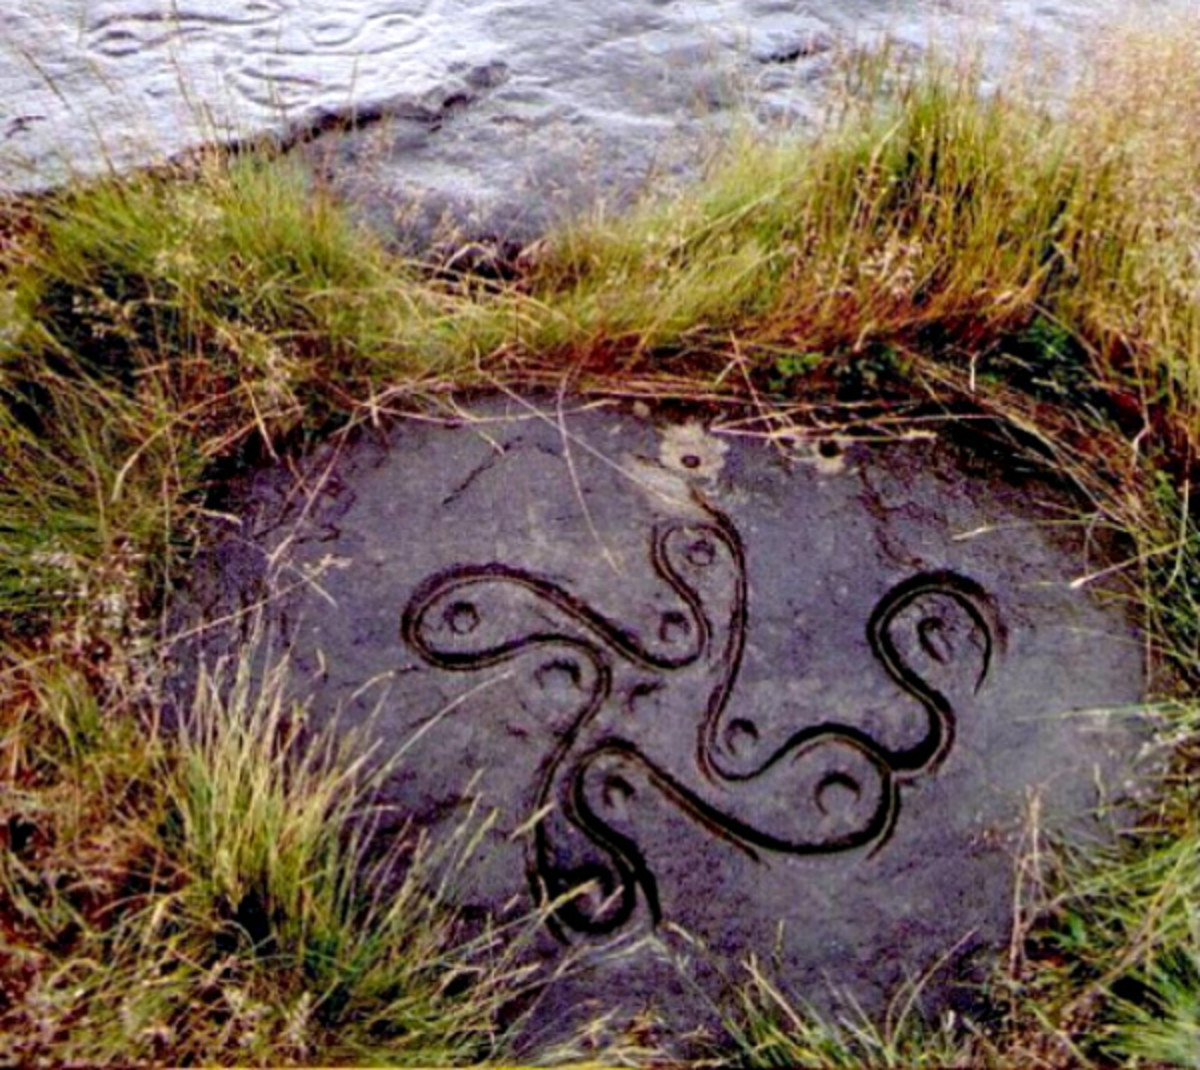 Oldest Swastika Celtic Cross Found Ilkley Moor, England